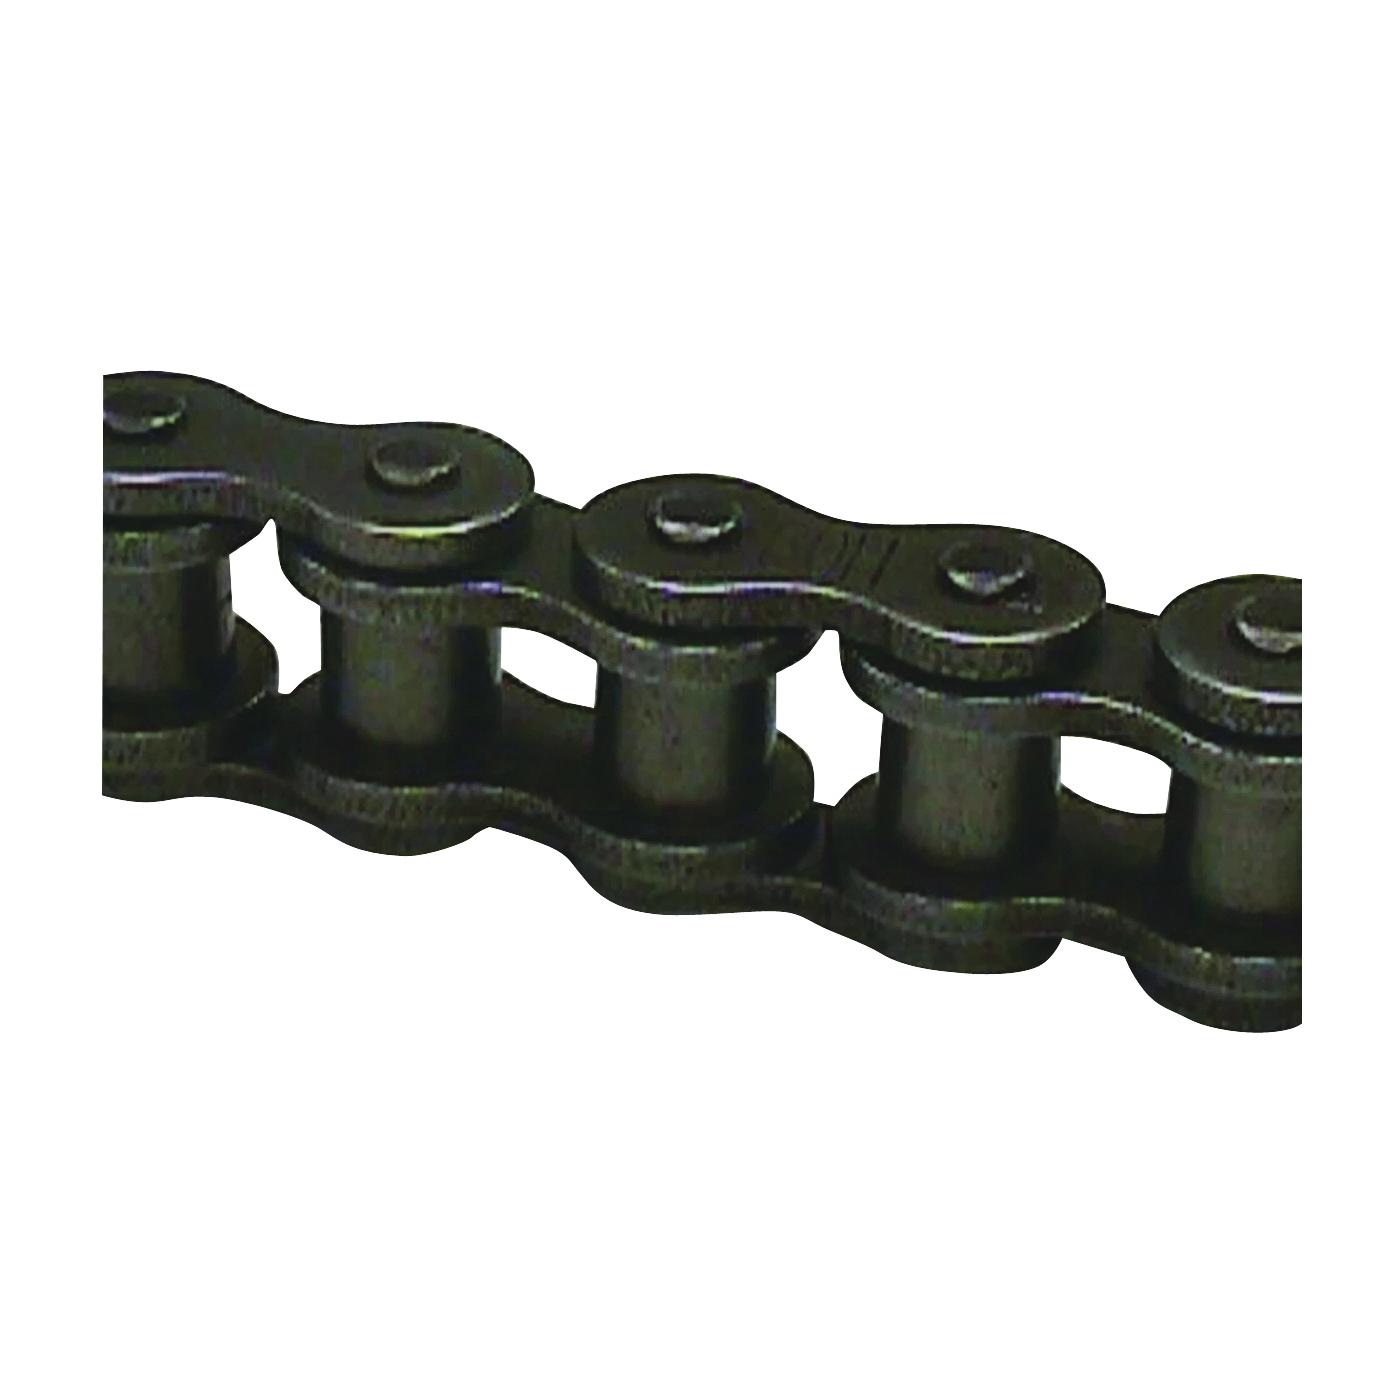 Picture of SpeeCo S06603 Roller Chain, #60, 10 ft L, 3/4 in TPI/Pitch, Shot Peened